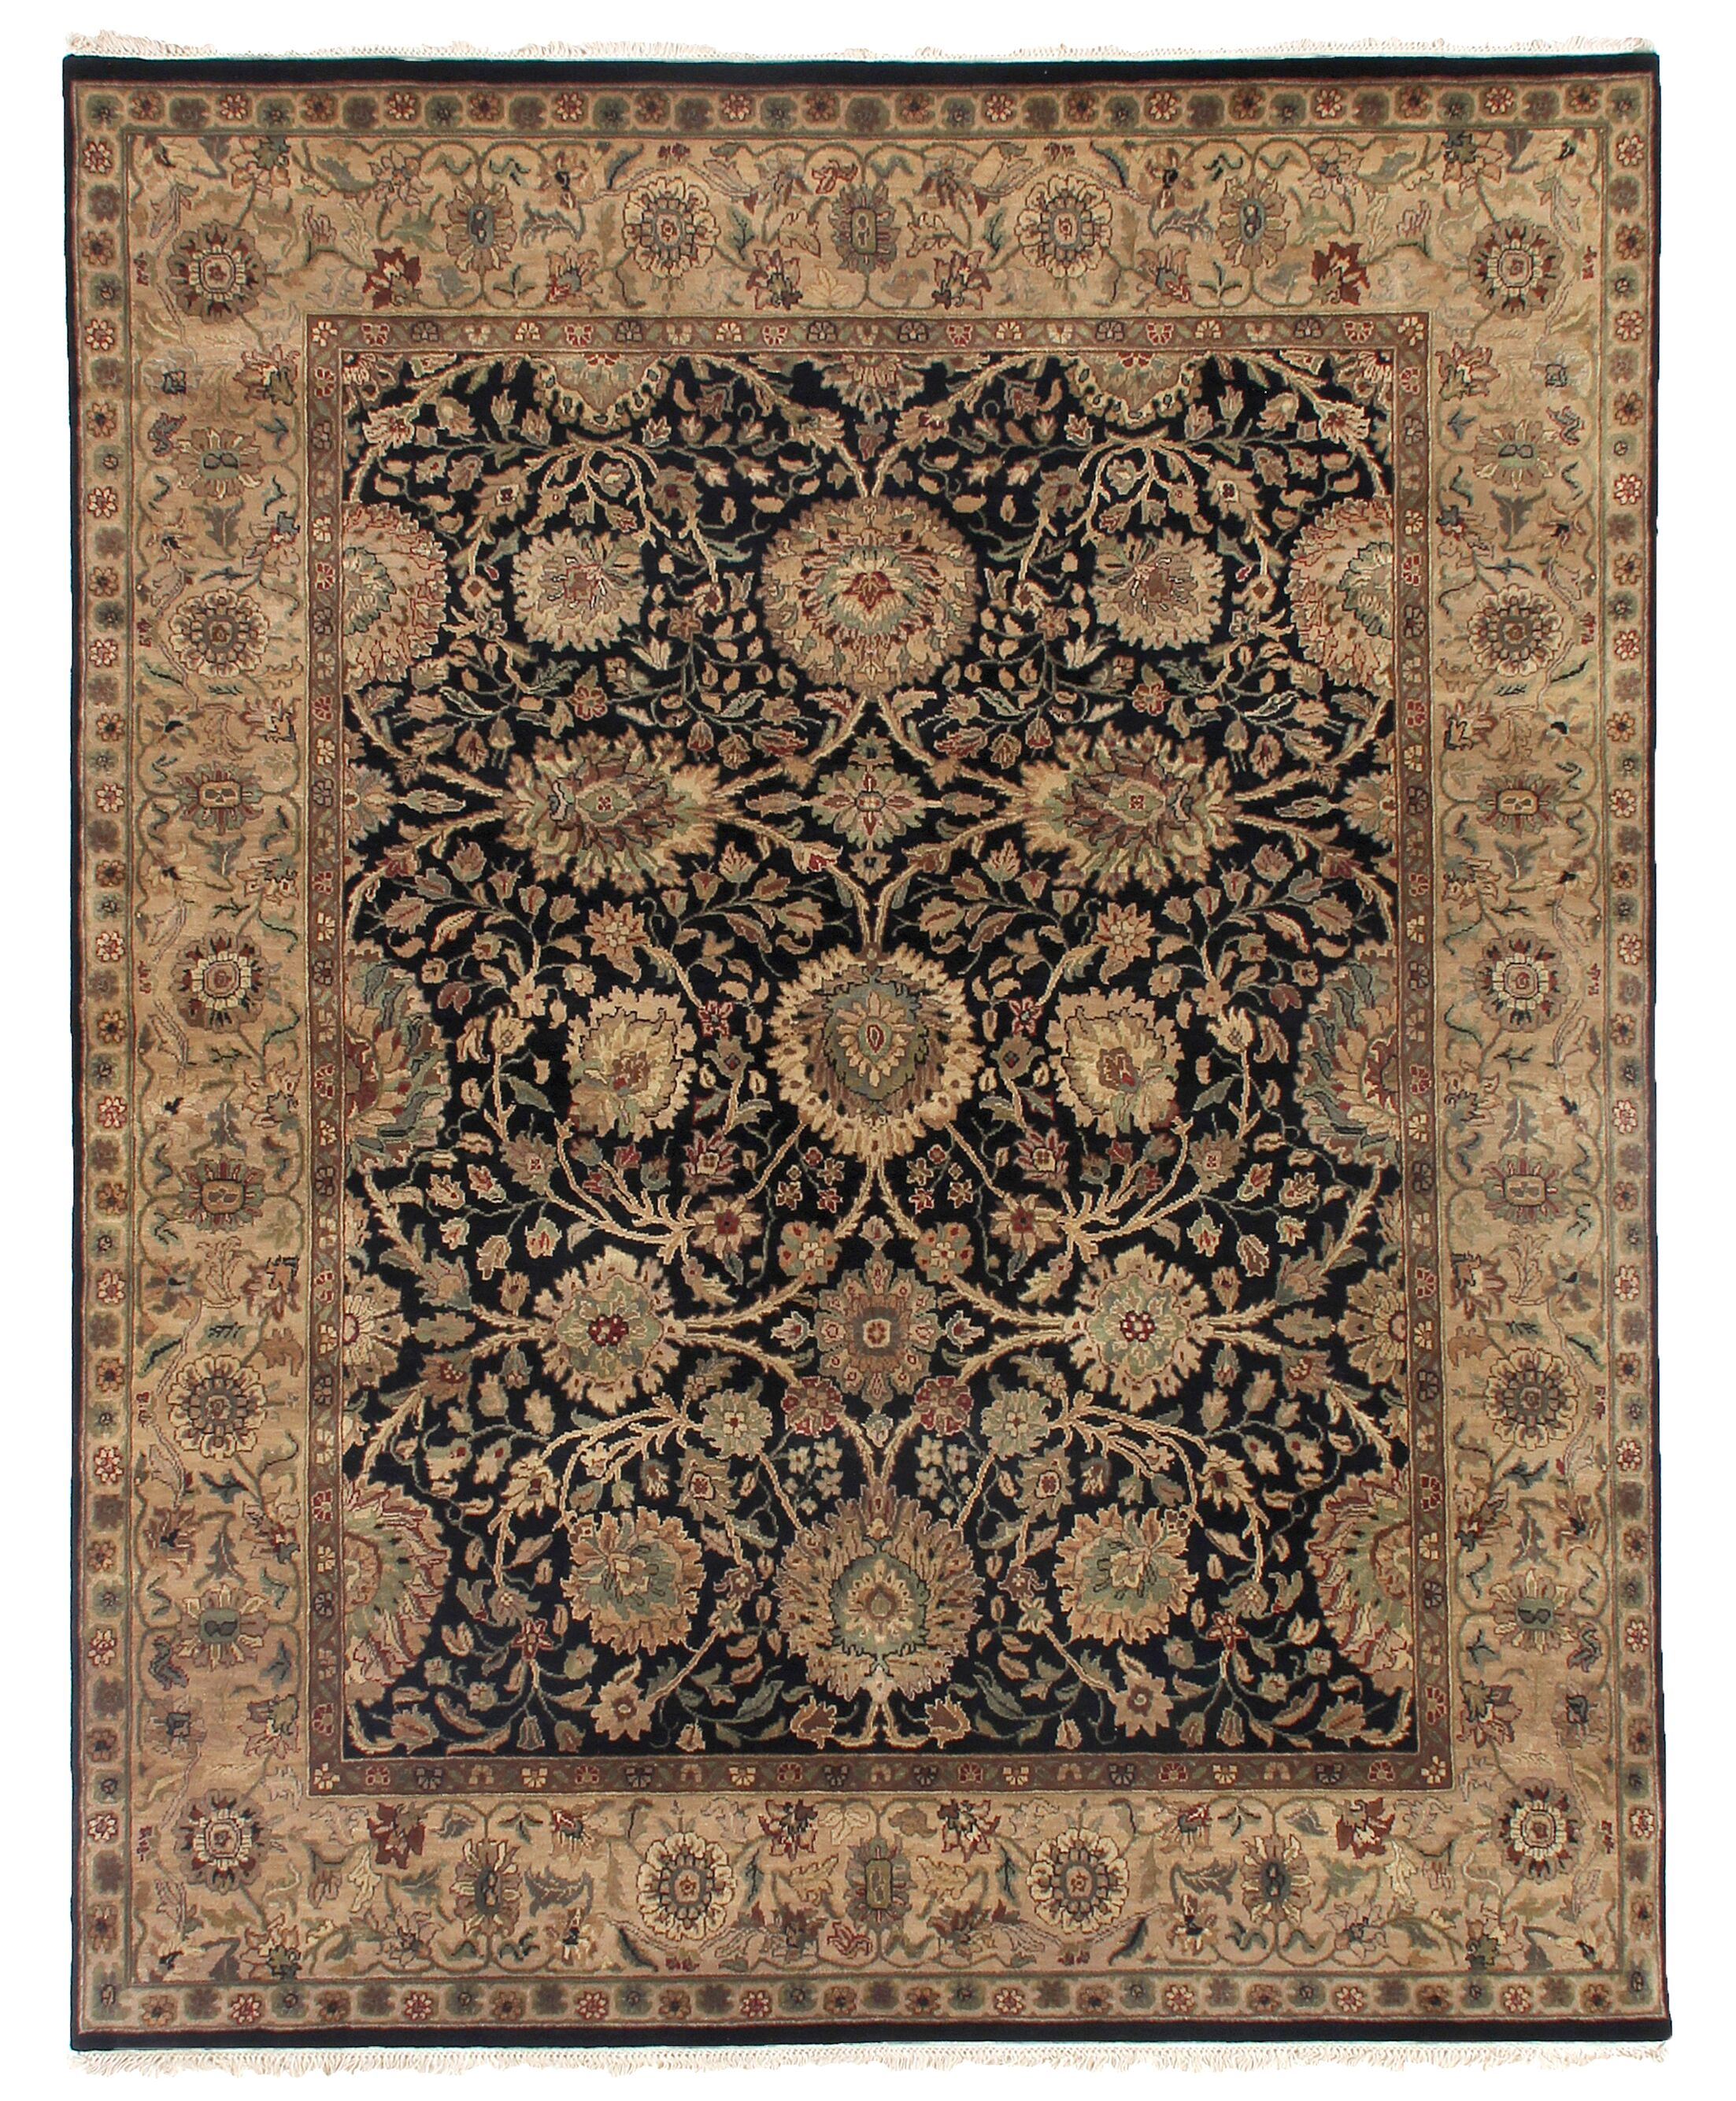 Moghul Hand-Knotted Wool Black/Beige Area Rug Rug Size: Rectangle 6' x 9'